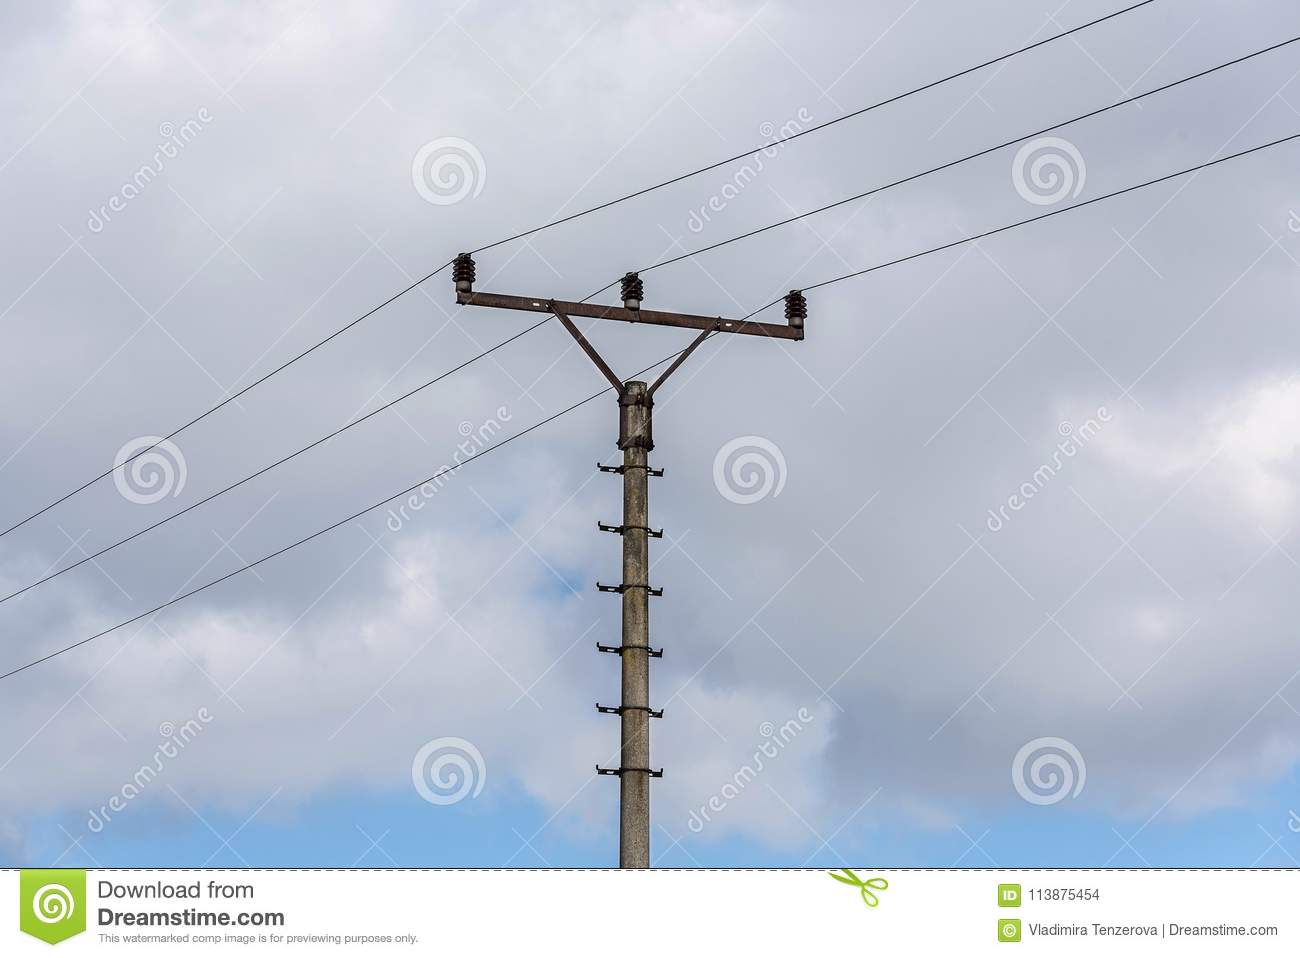 Landscape Electrical Wiring Diagrams Sky Box Wooden Column Of Electric With Wires Against The Download